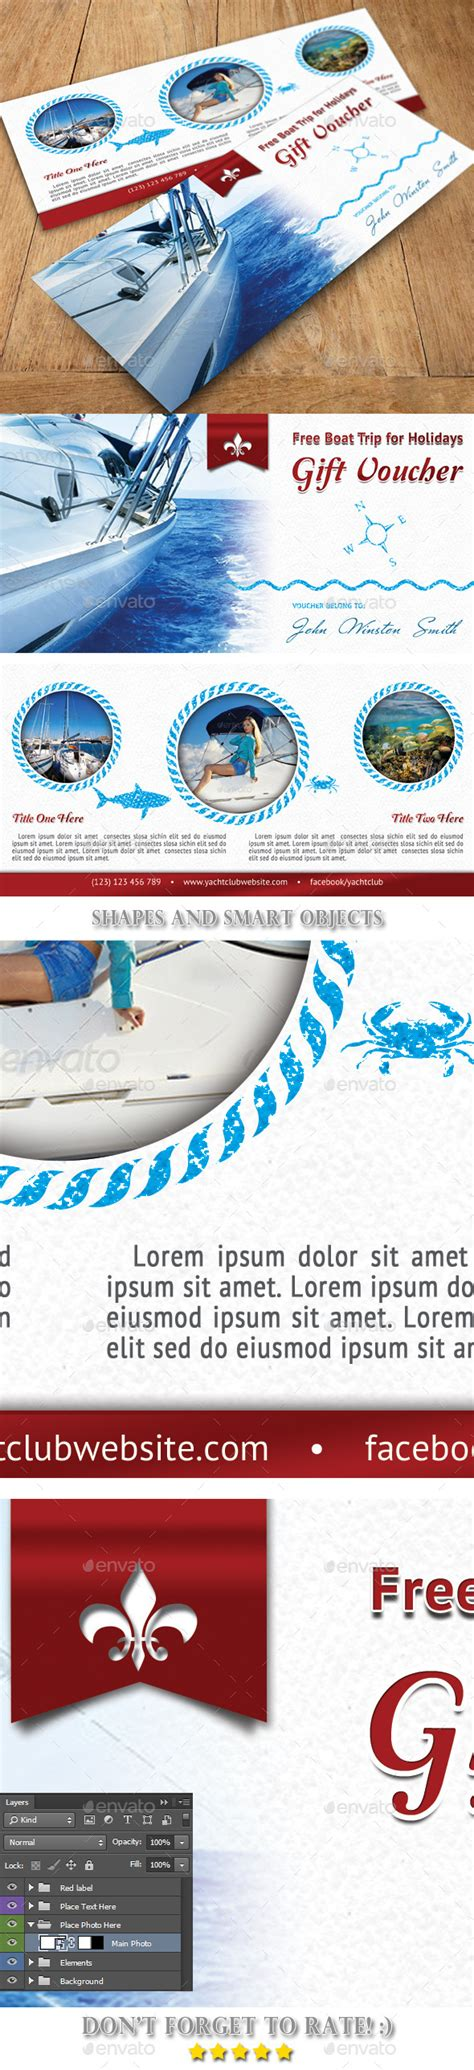 powerpoint templates yacht club yacht club voucher template 04 graphicriver